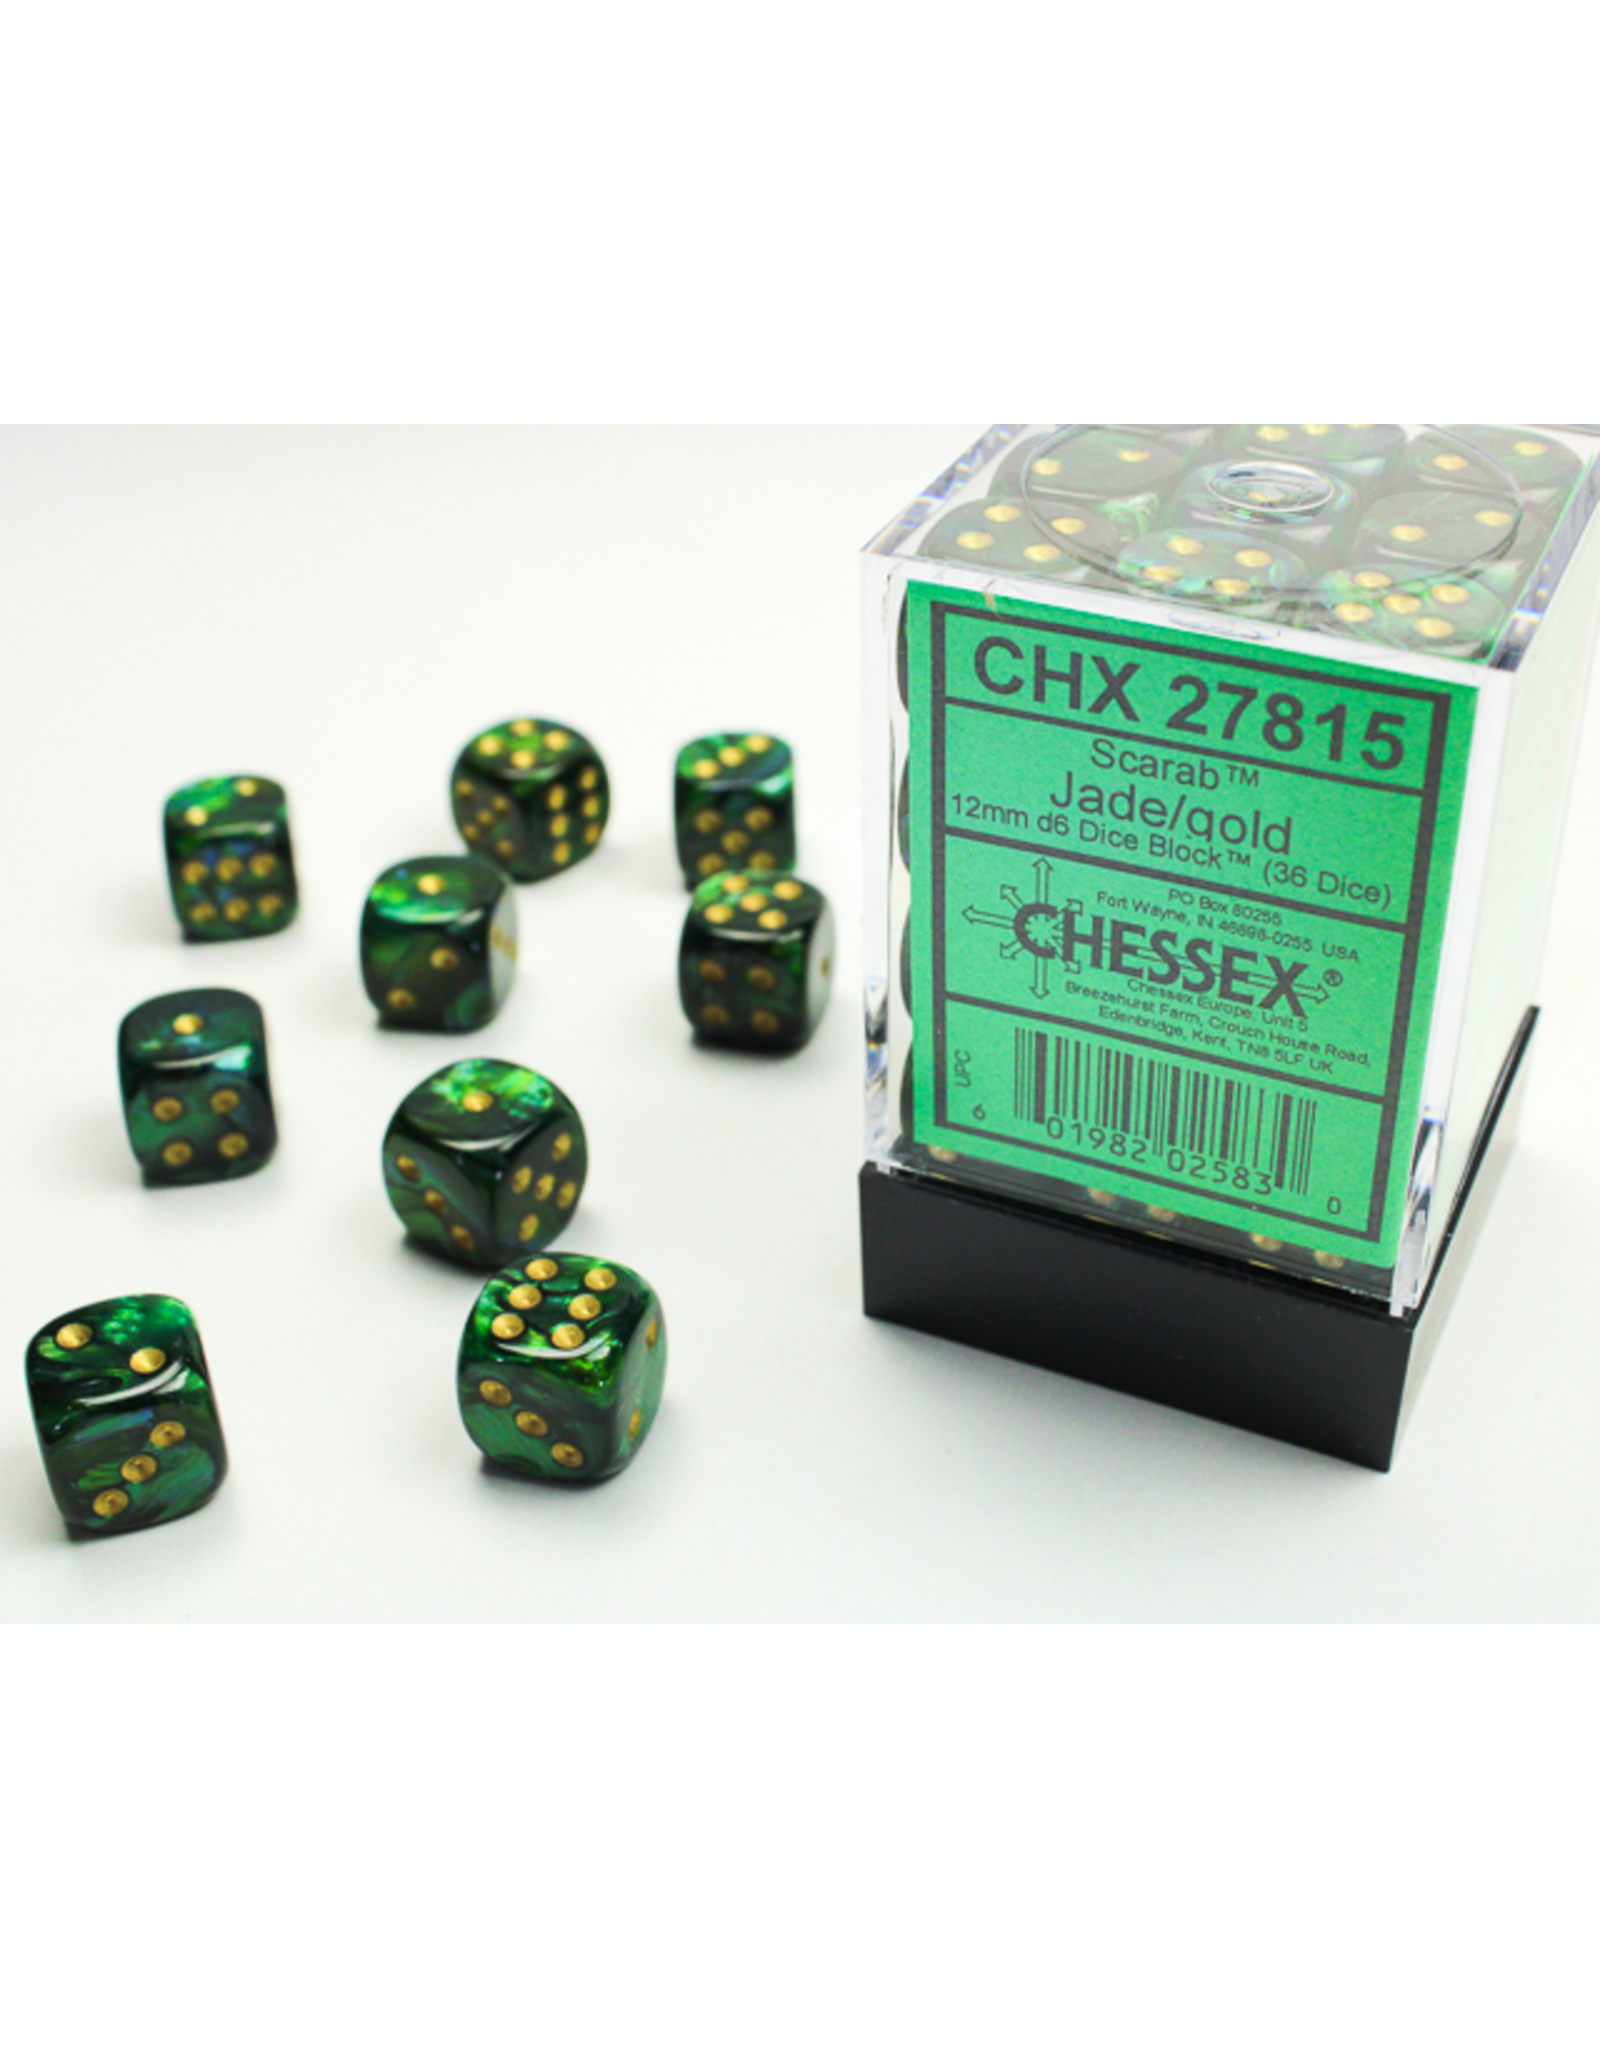 Chessex Dice: D6 Cube 12mm Scarab Jade with Gold Pips (CHX)